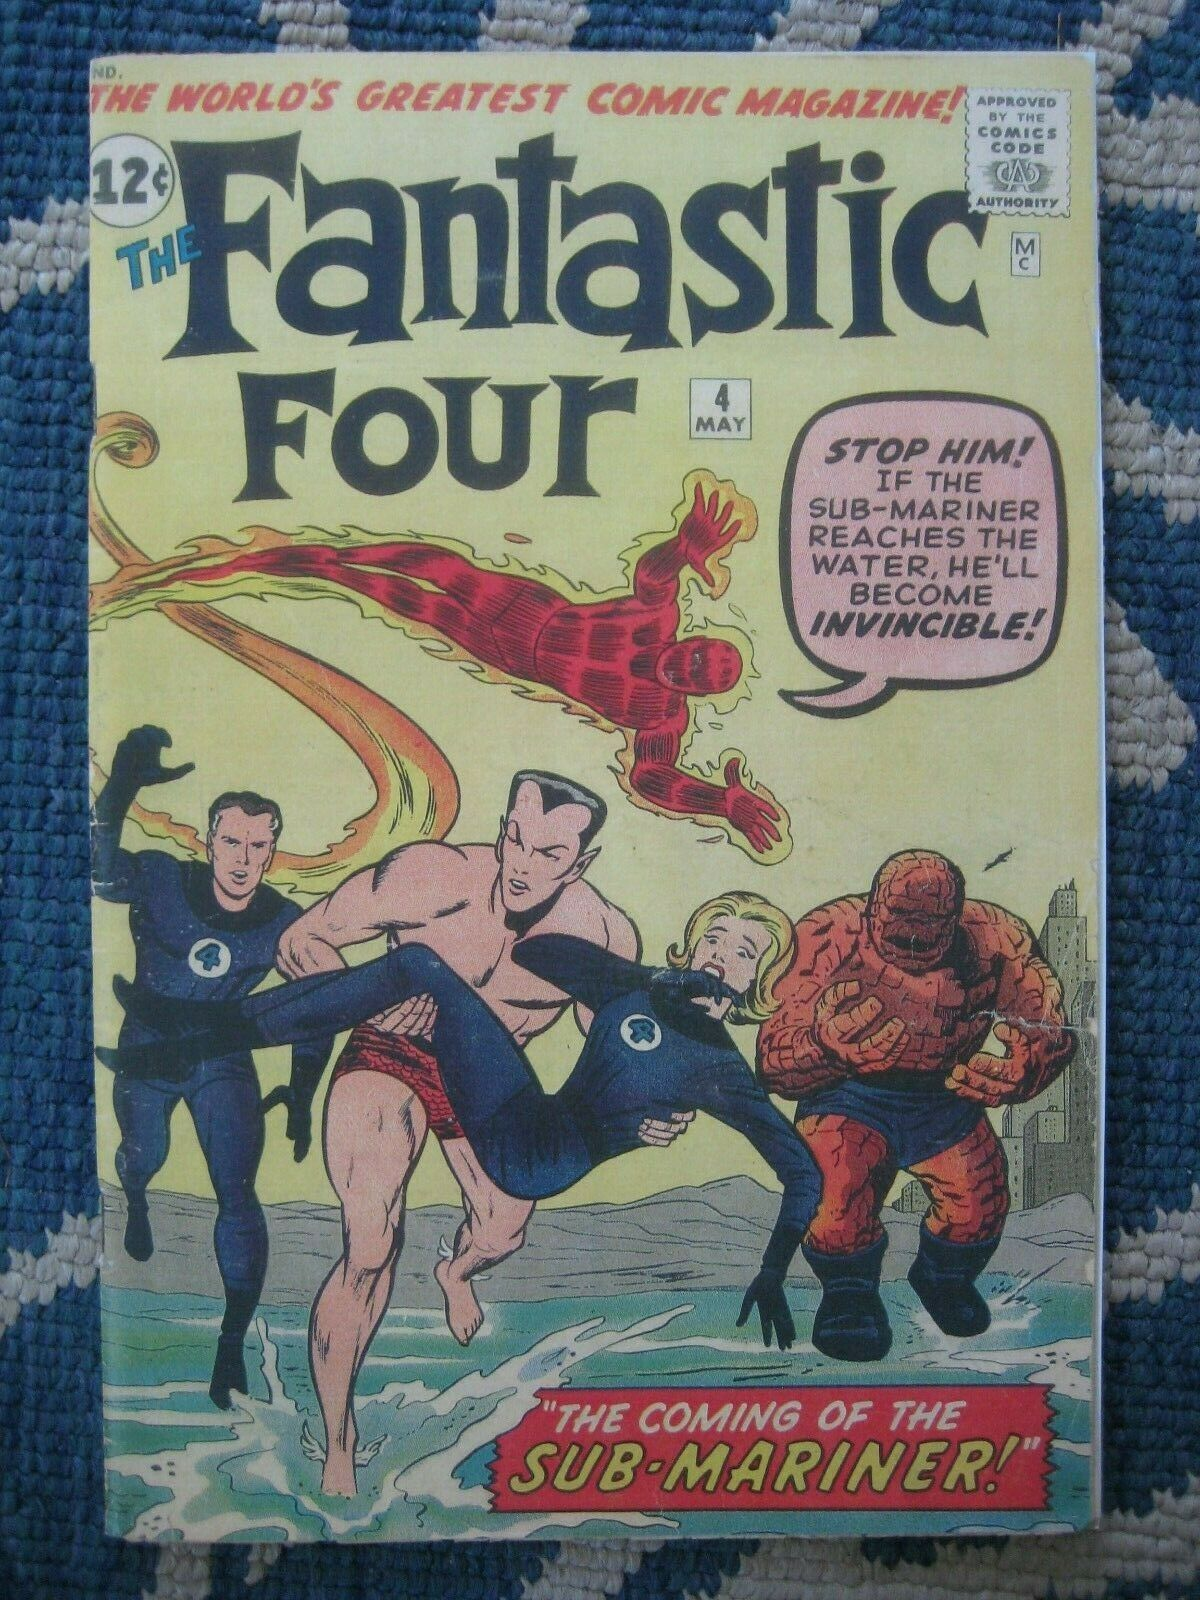 FANTASTIC FOUR #4 1962 1ST S.A. APP SUB-MARINER COVERLESS & INCOMPLETE(0.1}